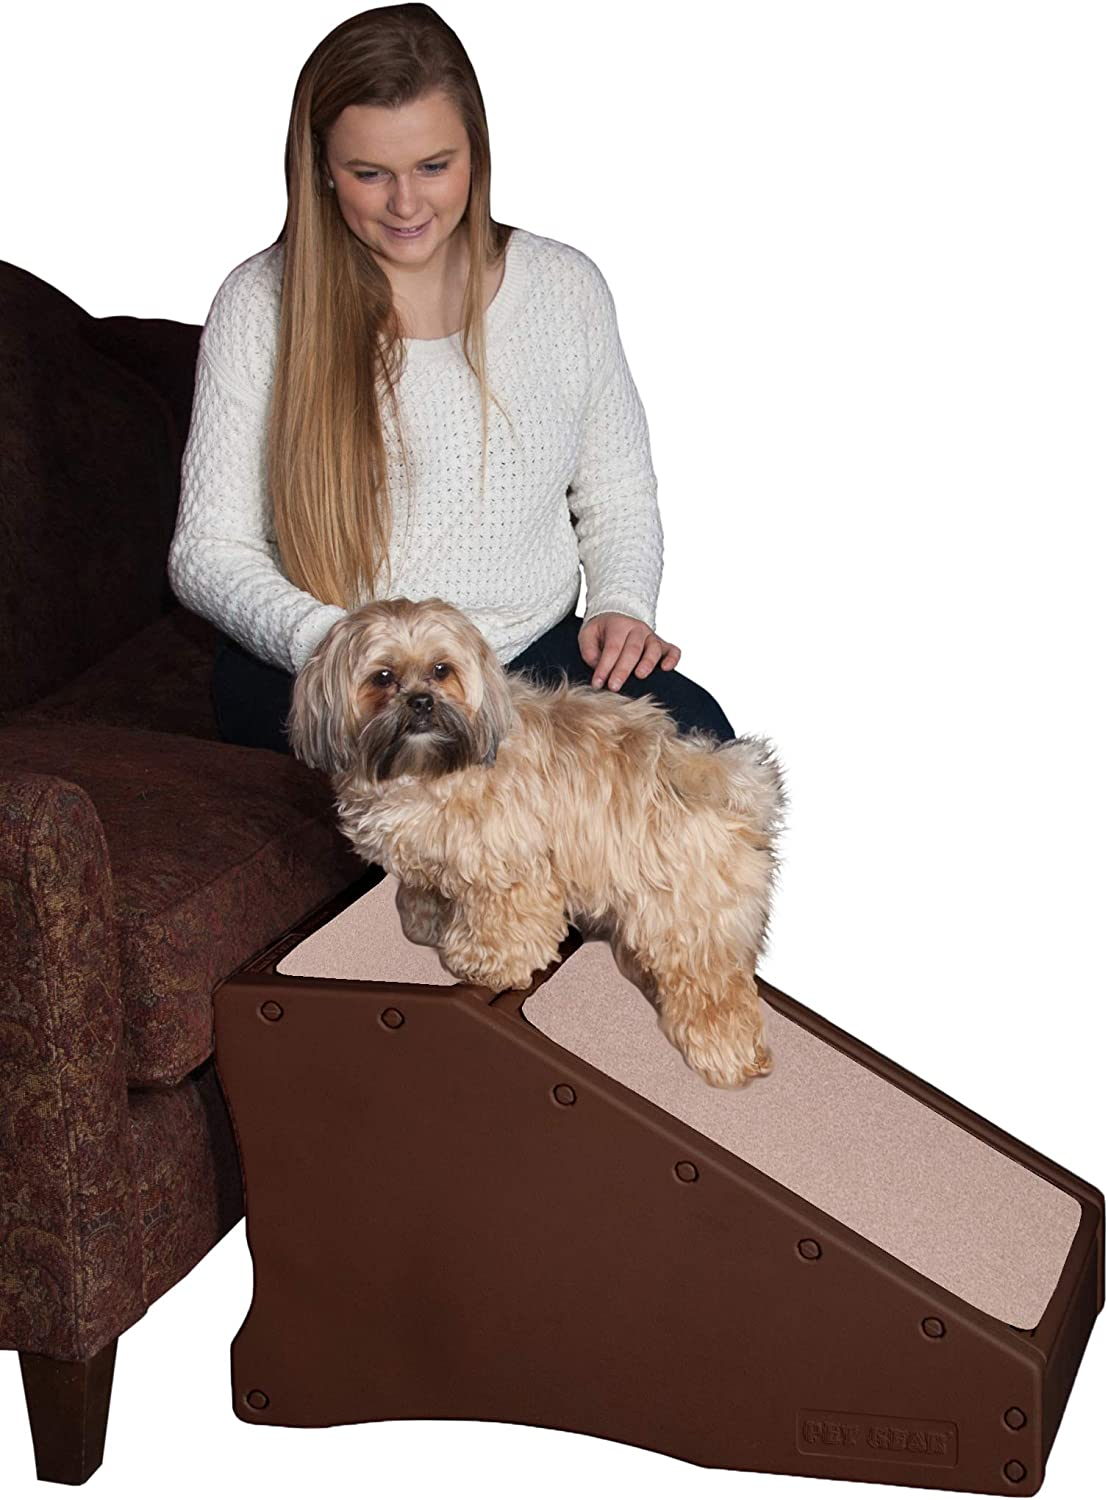 Pet Gear Stramp Stair and Ramp Combination, Dog/Cat Easy Step, Lightweight/Portable, Sturdy : Pet Ramps For Small Dogs : Pet Supplies